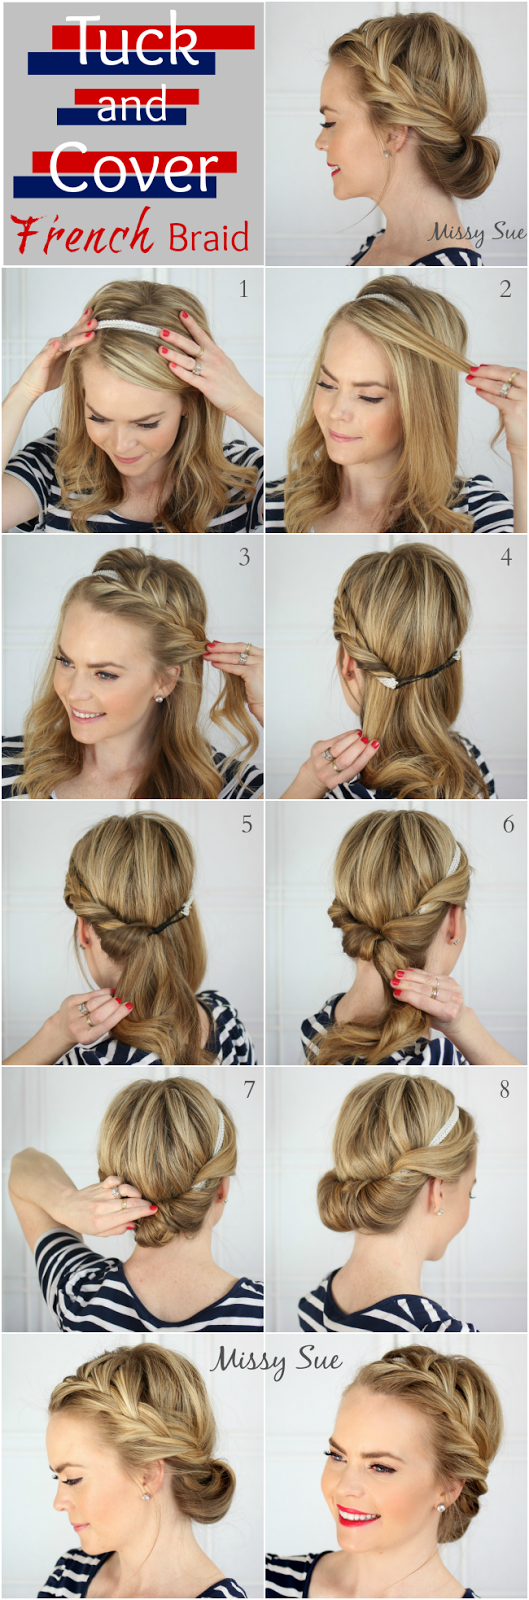 15 easy yet trendy hairstyle tutorials you will love | styles